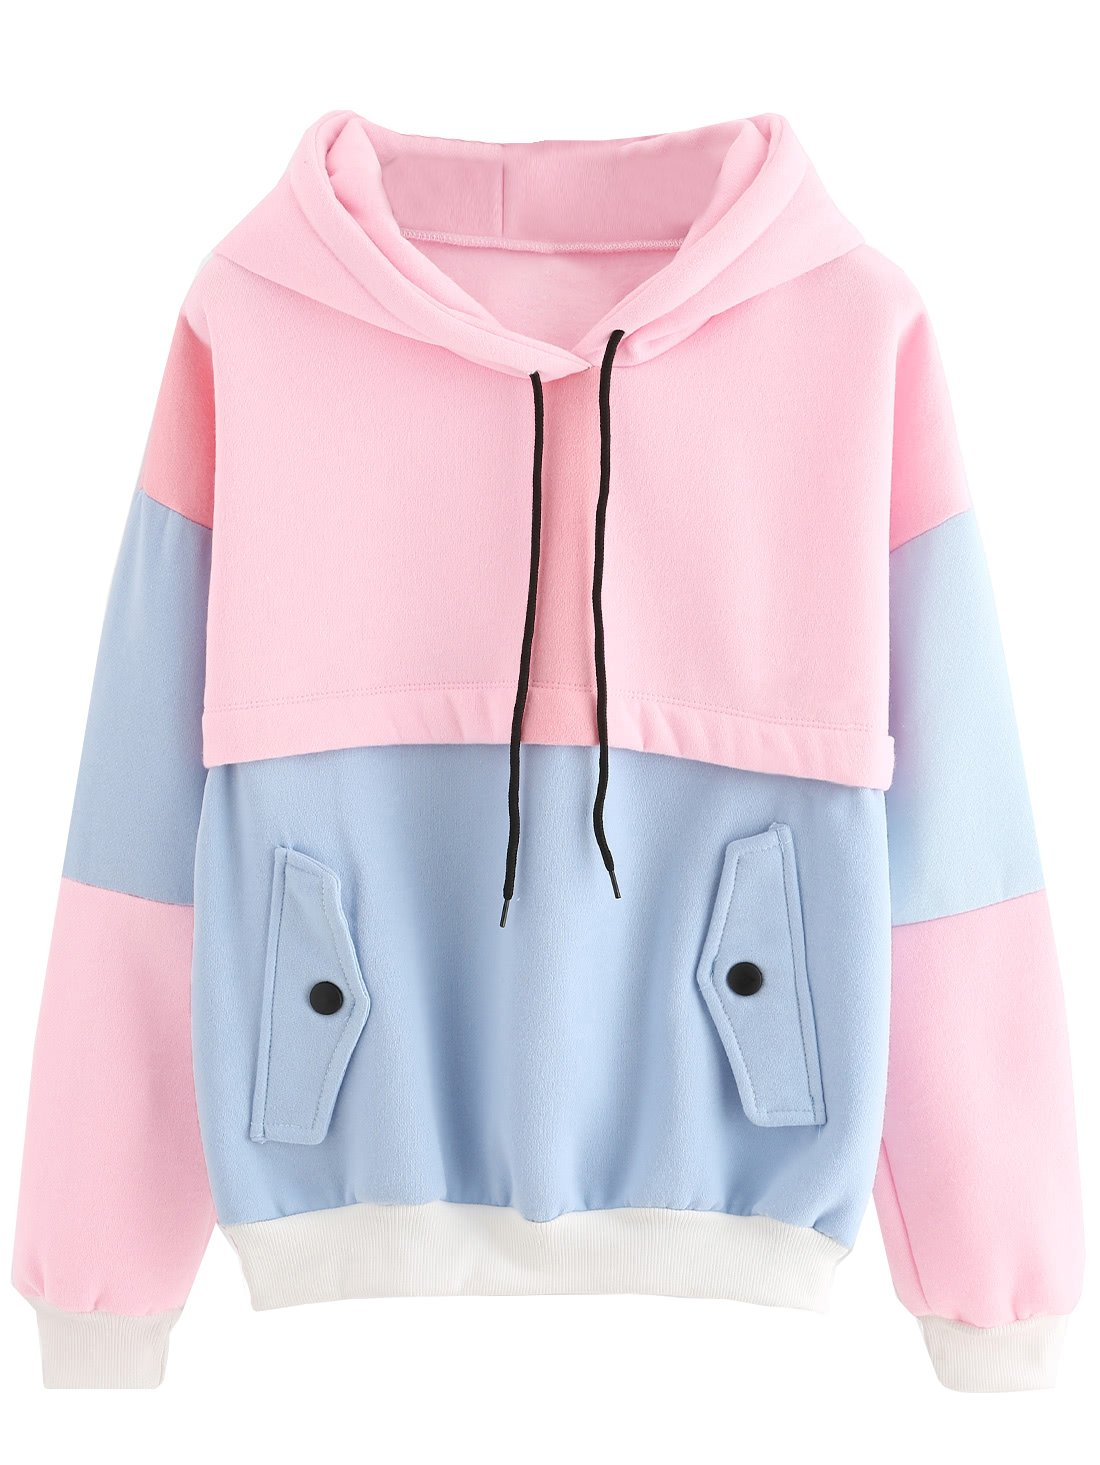 SweatyRocks Women's Winter Color Block Long Sleeve Fleece Hoodie Sweatshirt with Pockets